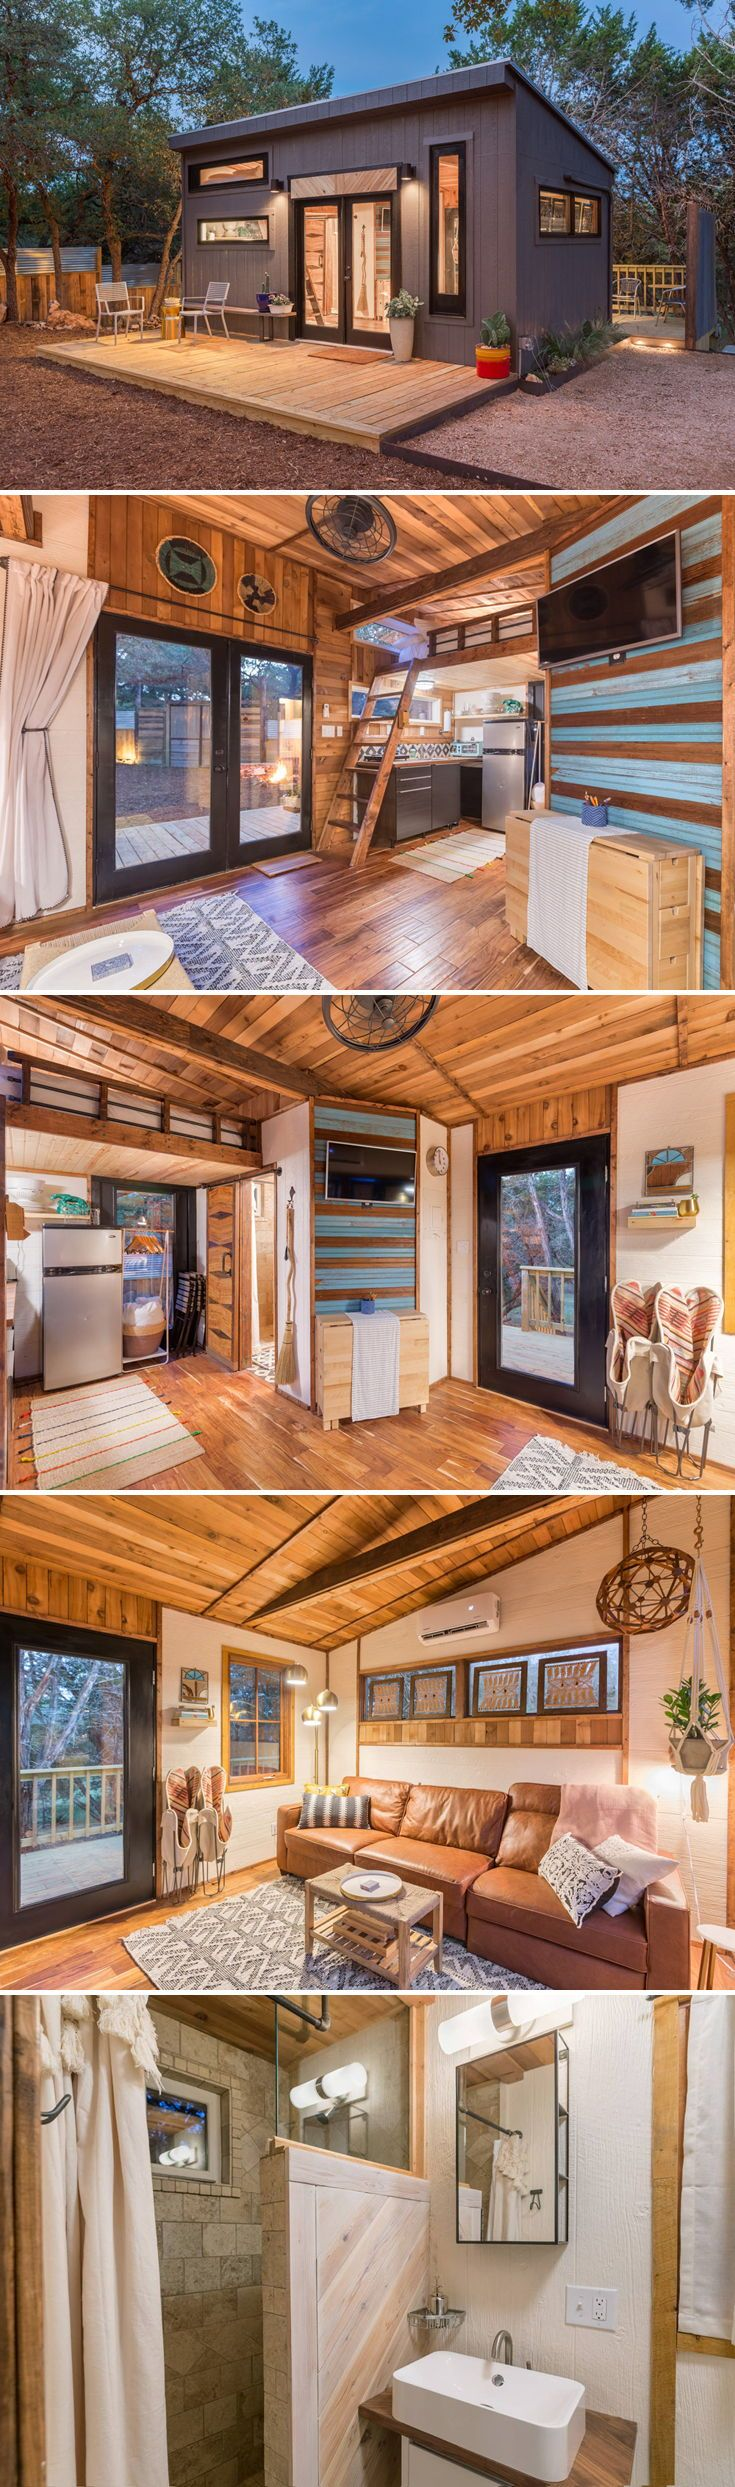 Sundown Tiny Home